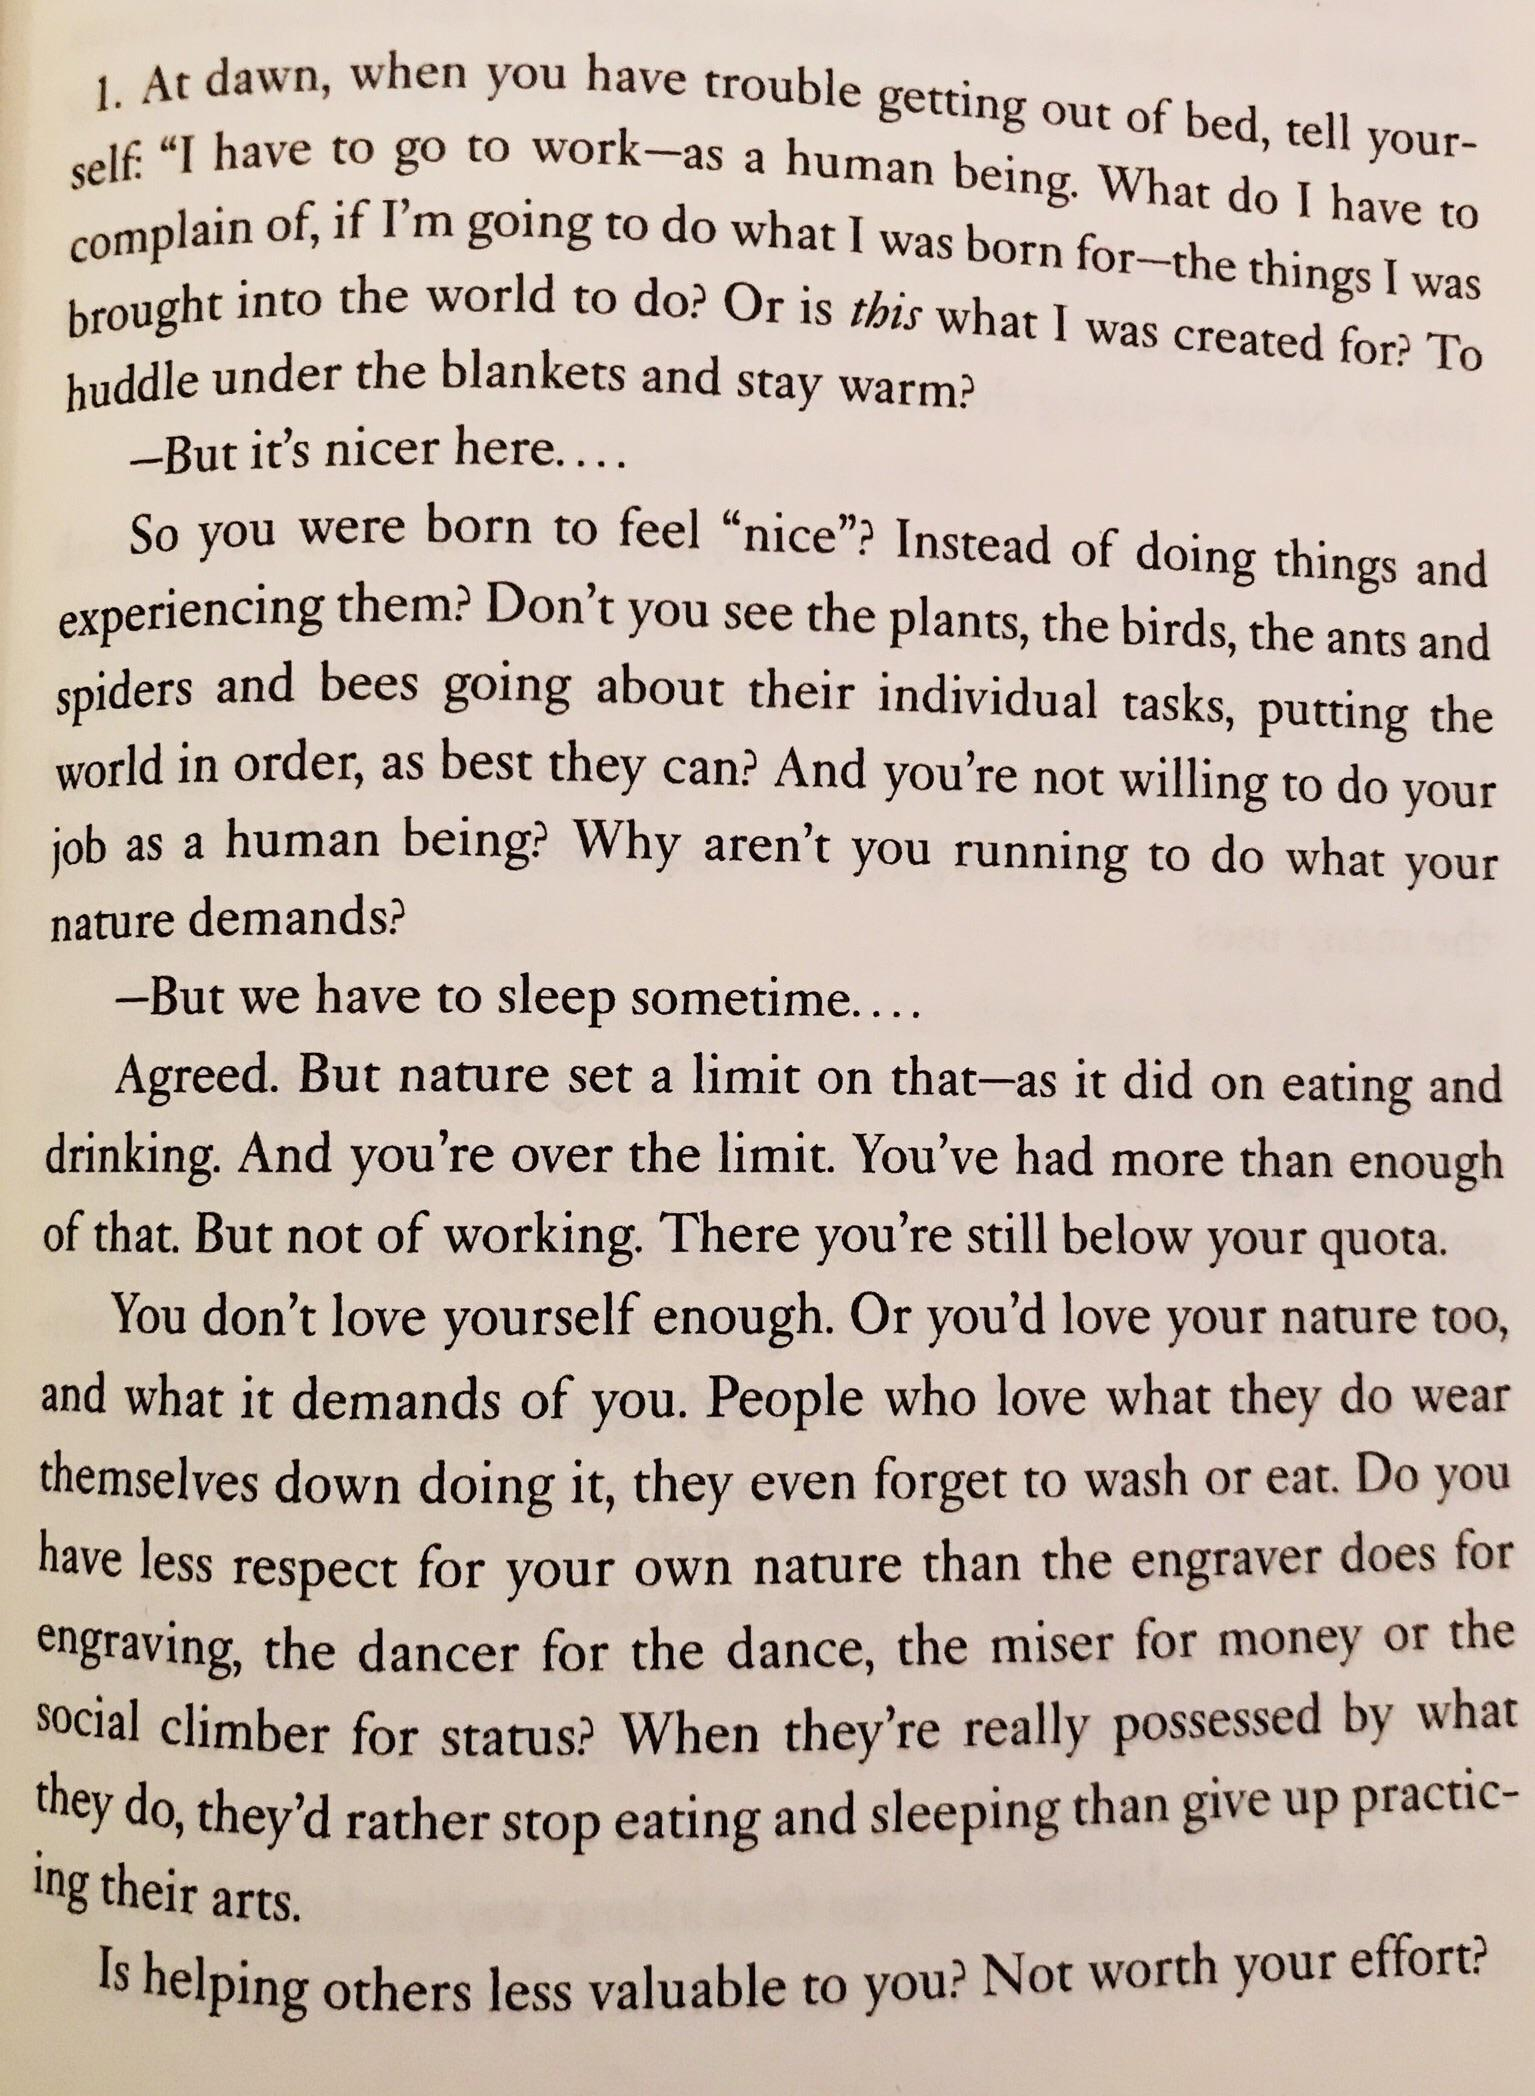 [Image] From the 5th book of Marcus Aurelius' Meditations, here's a little motivation from arguably the greatest and noblest emperor in the history of Rome.